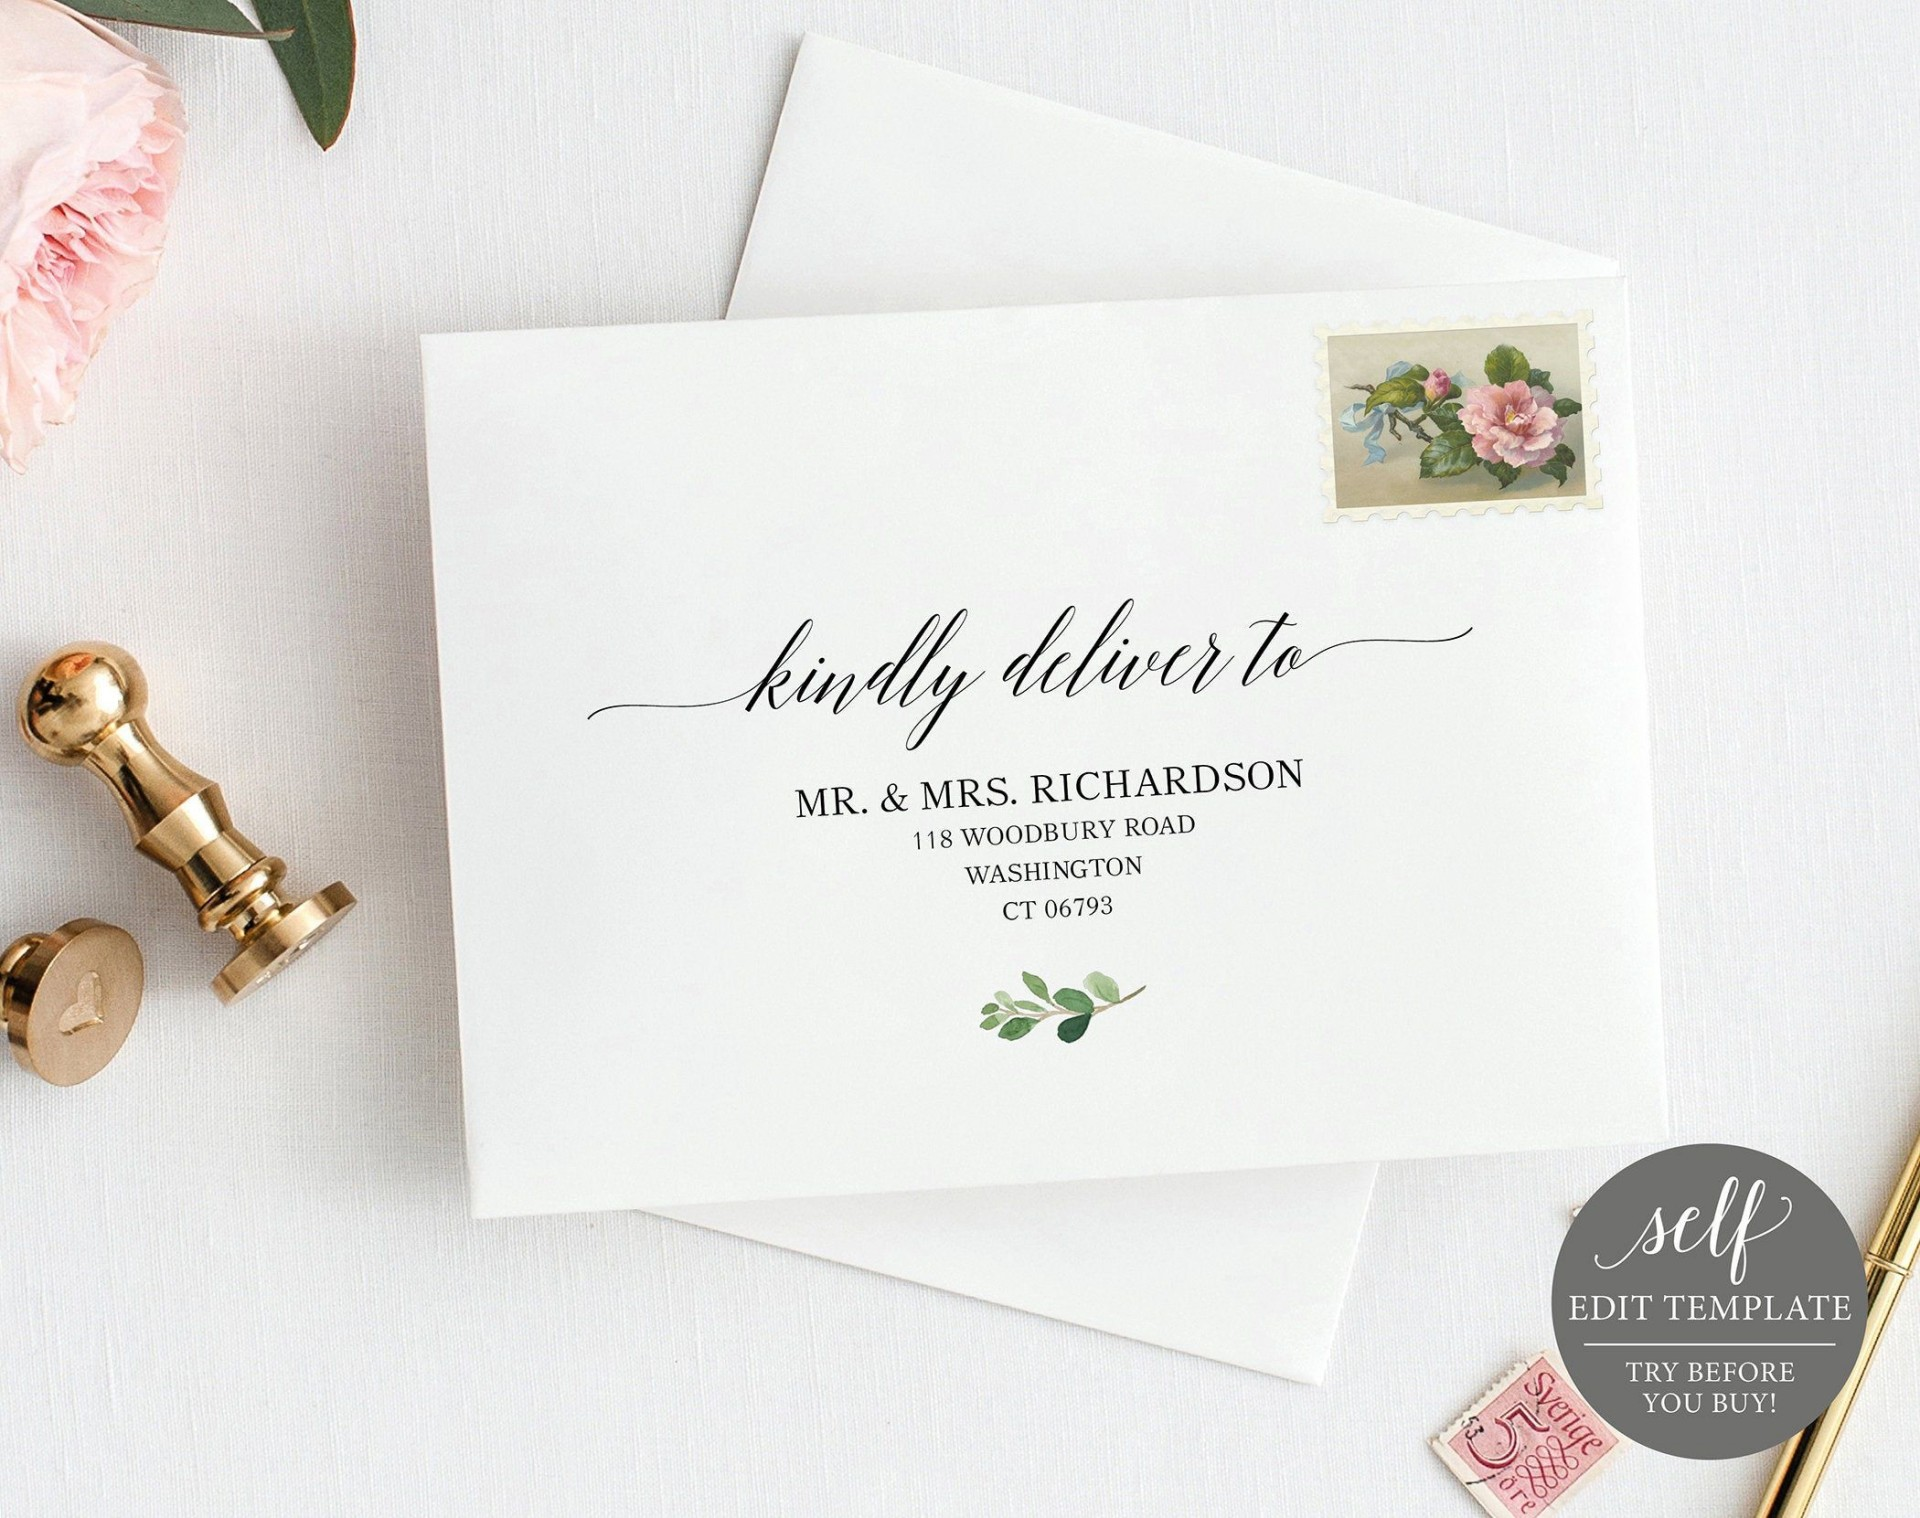 005 Dreaded Wedding Addres Label Template Concept  Free Printable1920